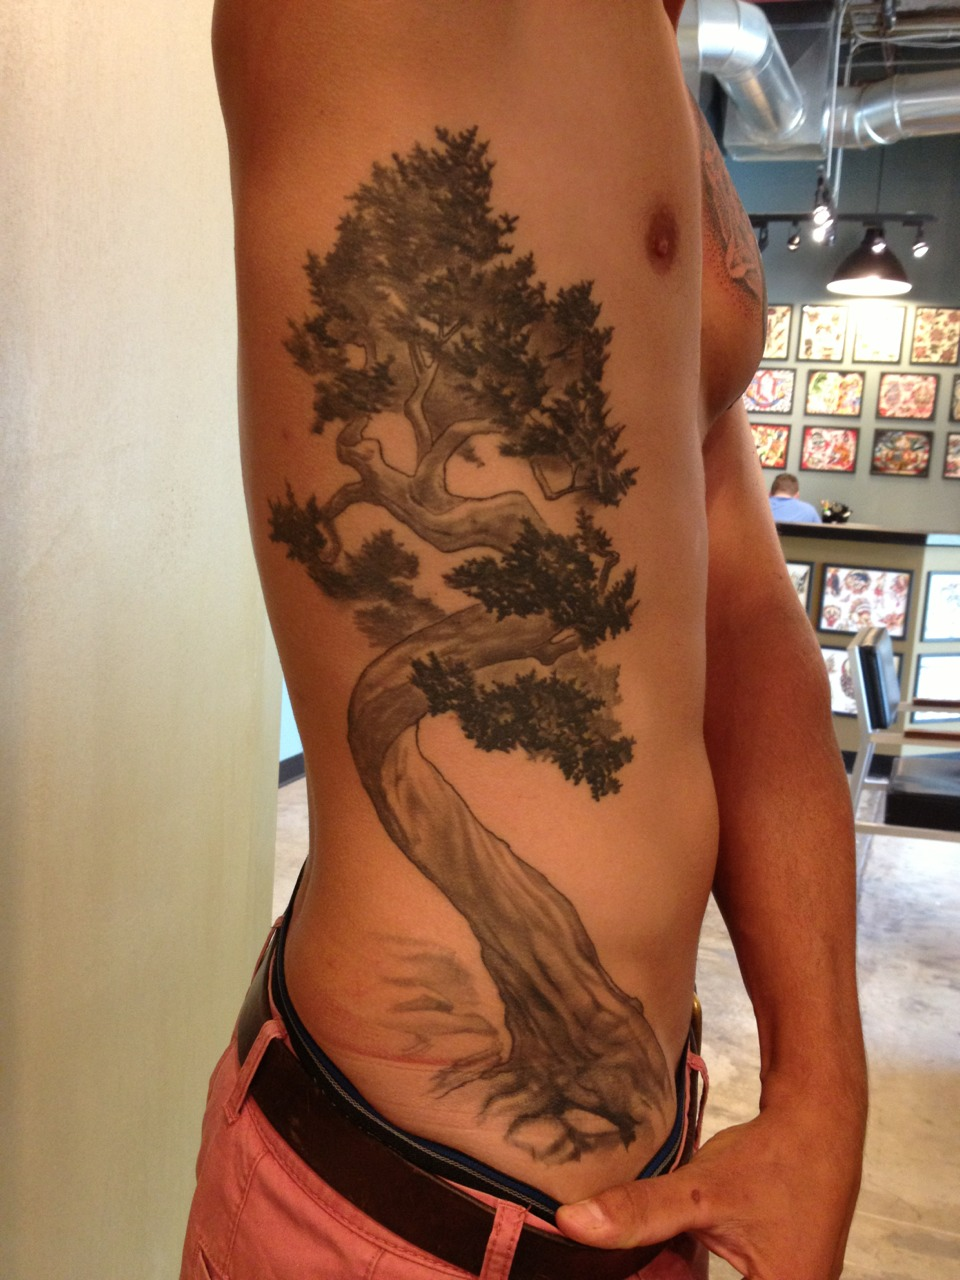 Healed pics of a tree done in one sitting last year on the road.